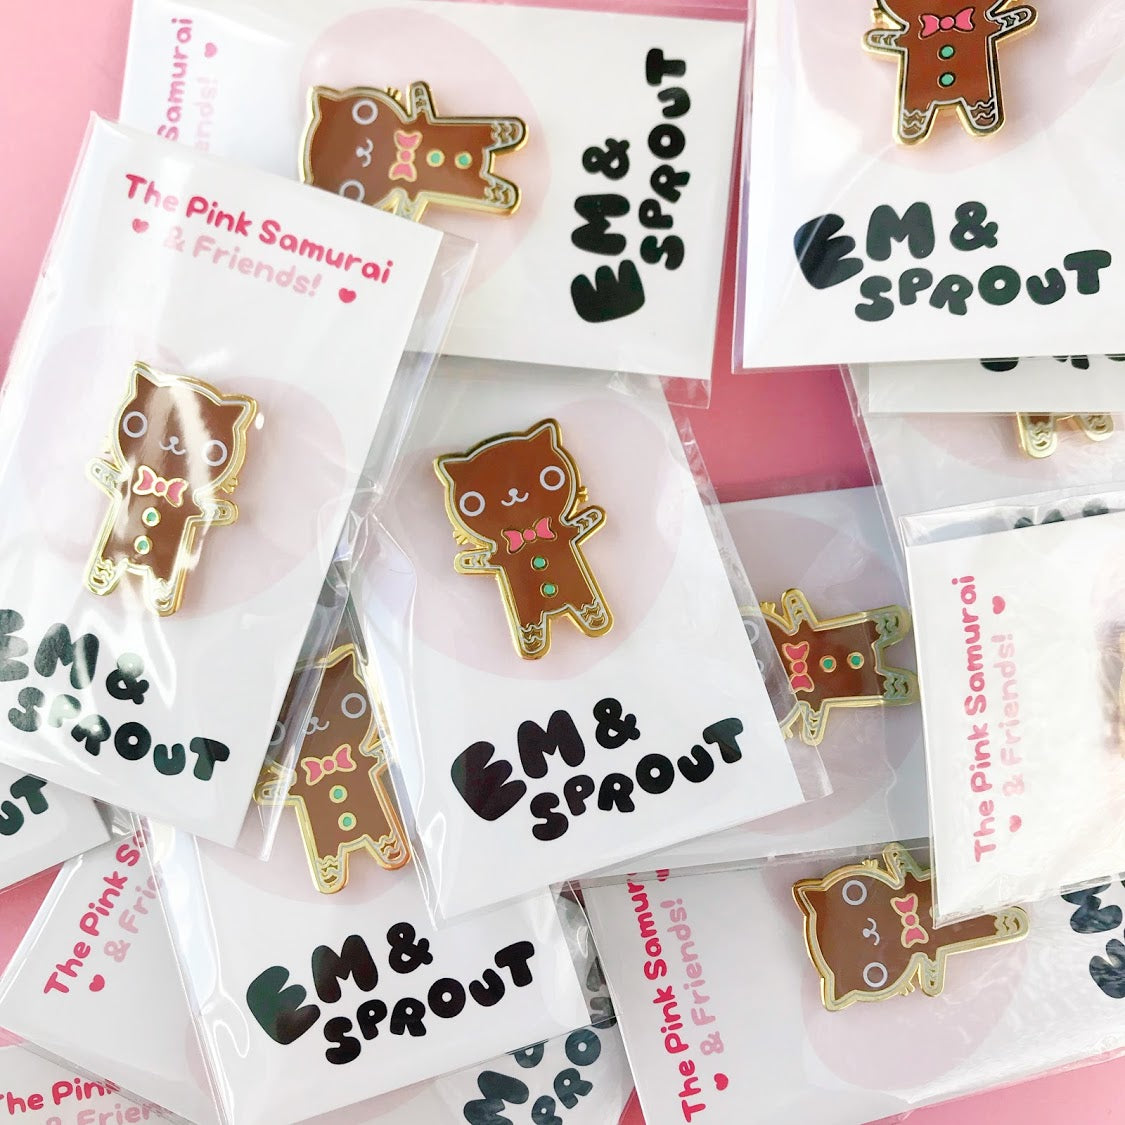 Gingerbread Cat Enamel Pin • Em & Sprout + The Pink Samurai